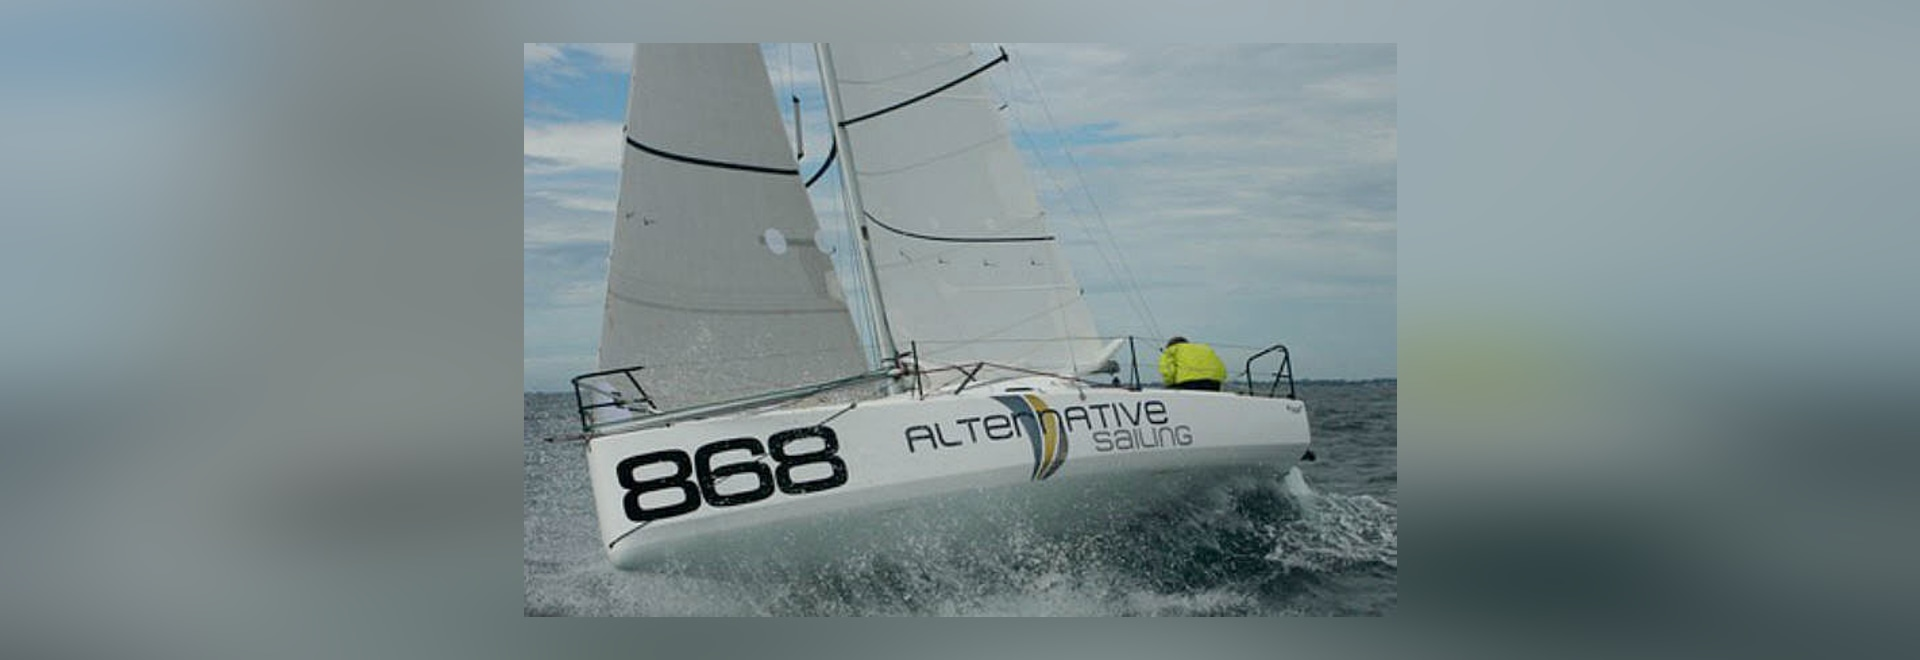 """Pogo 3 - Nominé pour les """"European Yacht of the Year 2015 (special yachts)"""""""